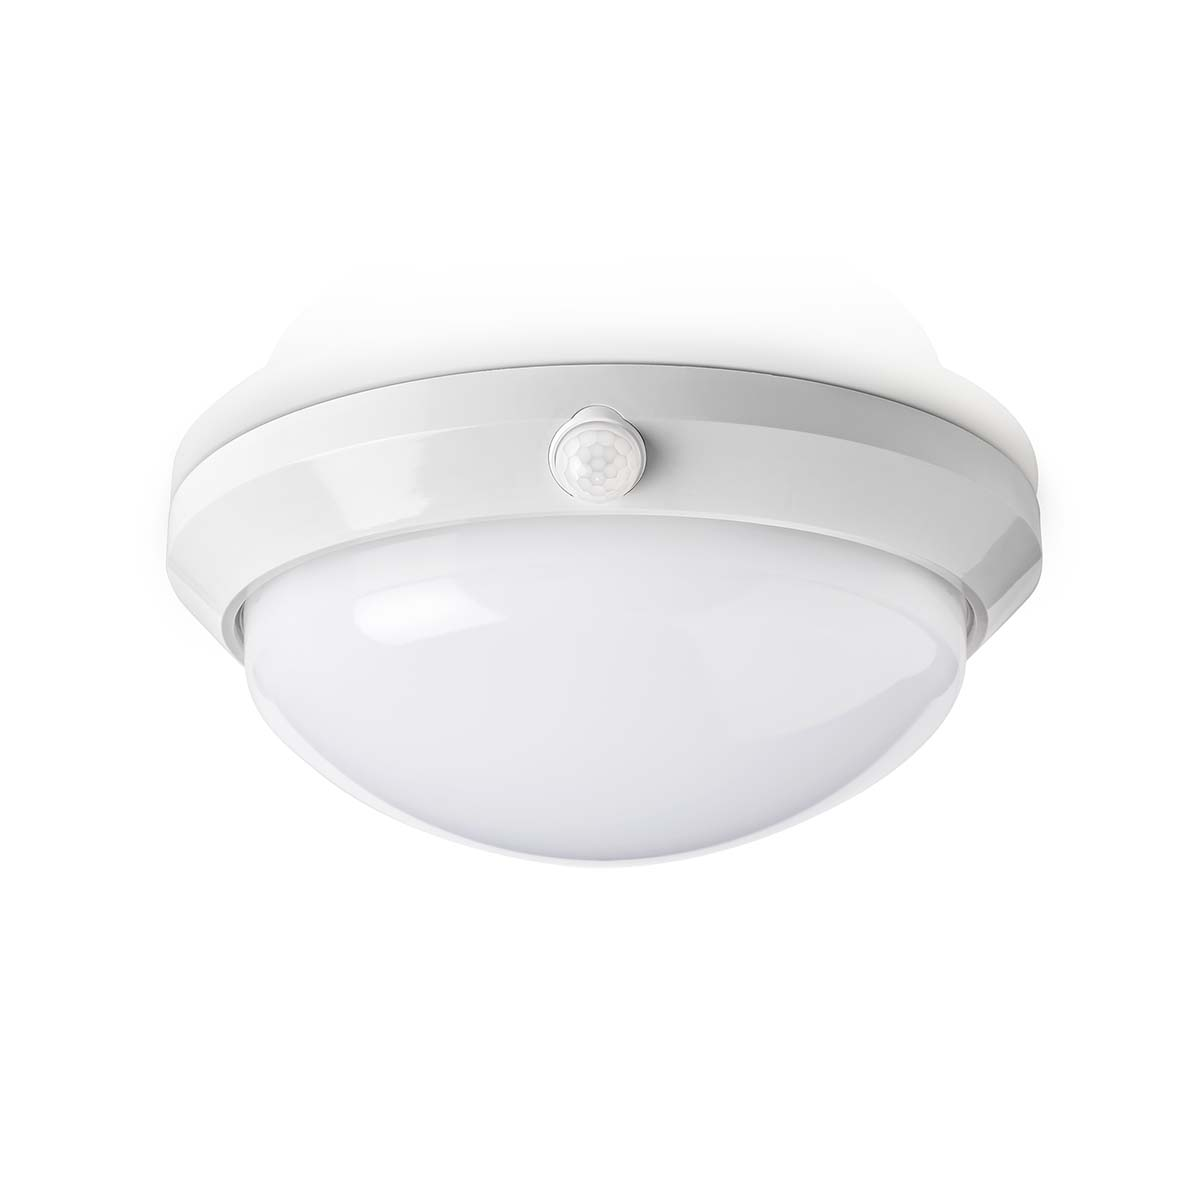 Led Wall Ceiling Light Indoor Outdoor Porch With Sensor Pir Motion Detector Ebay